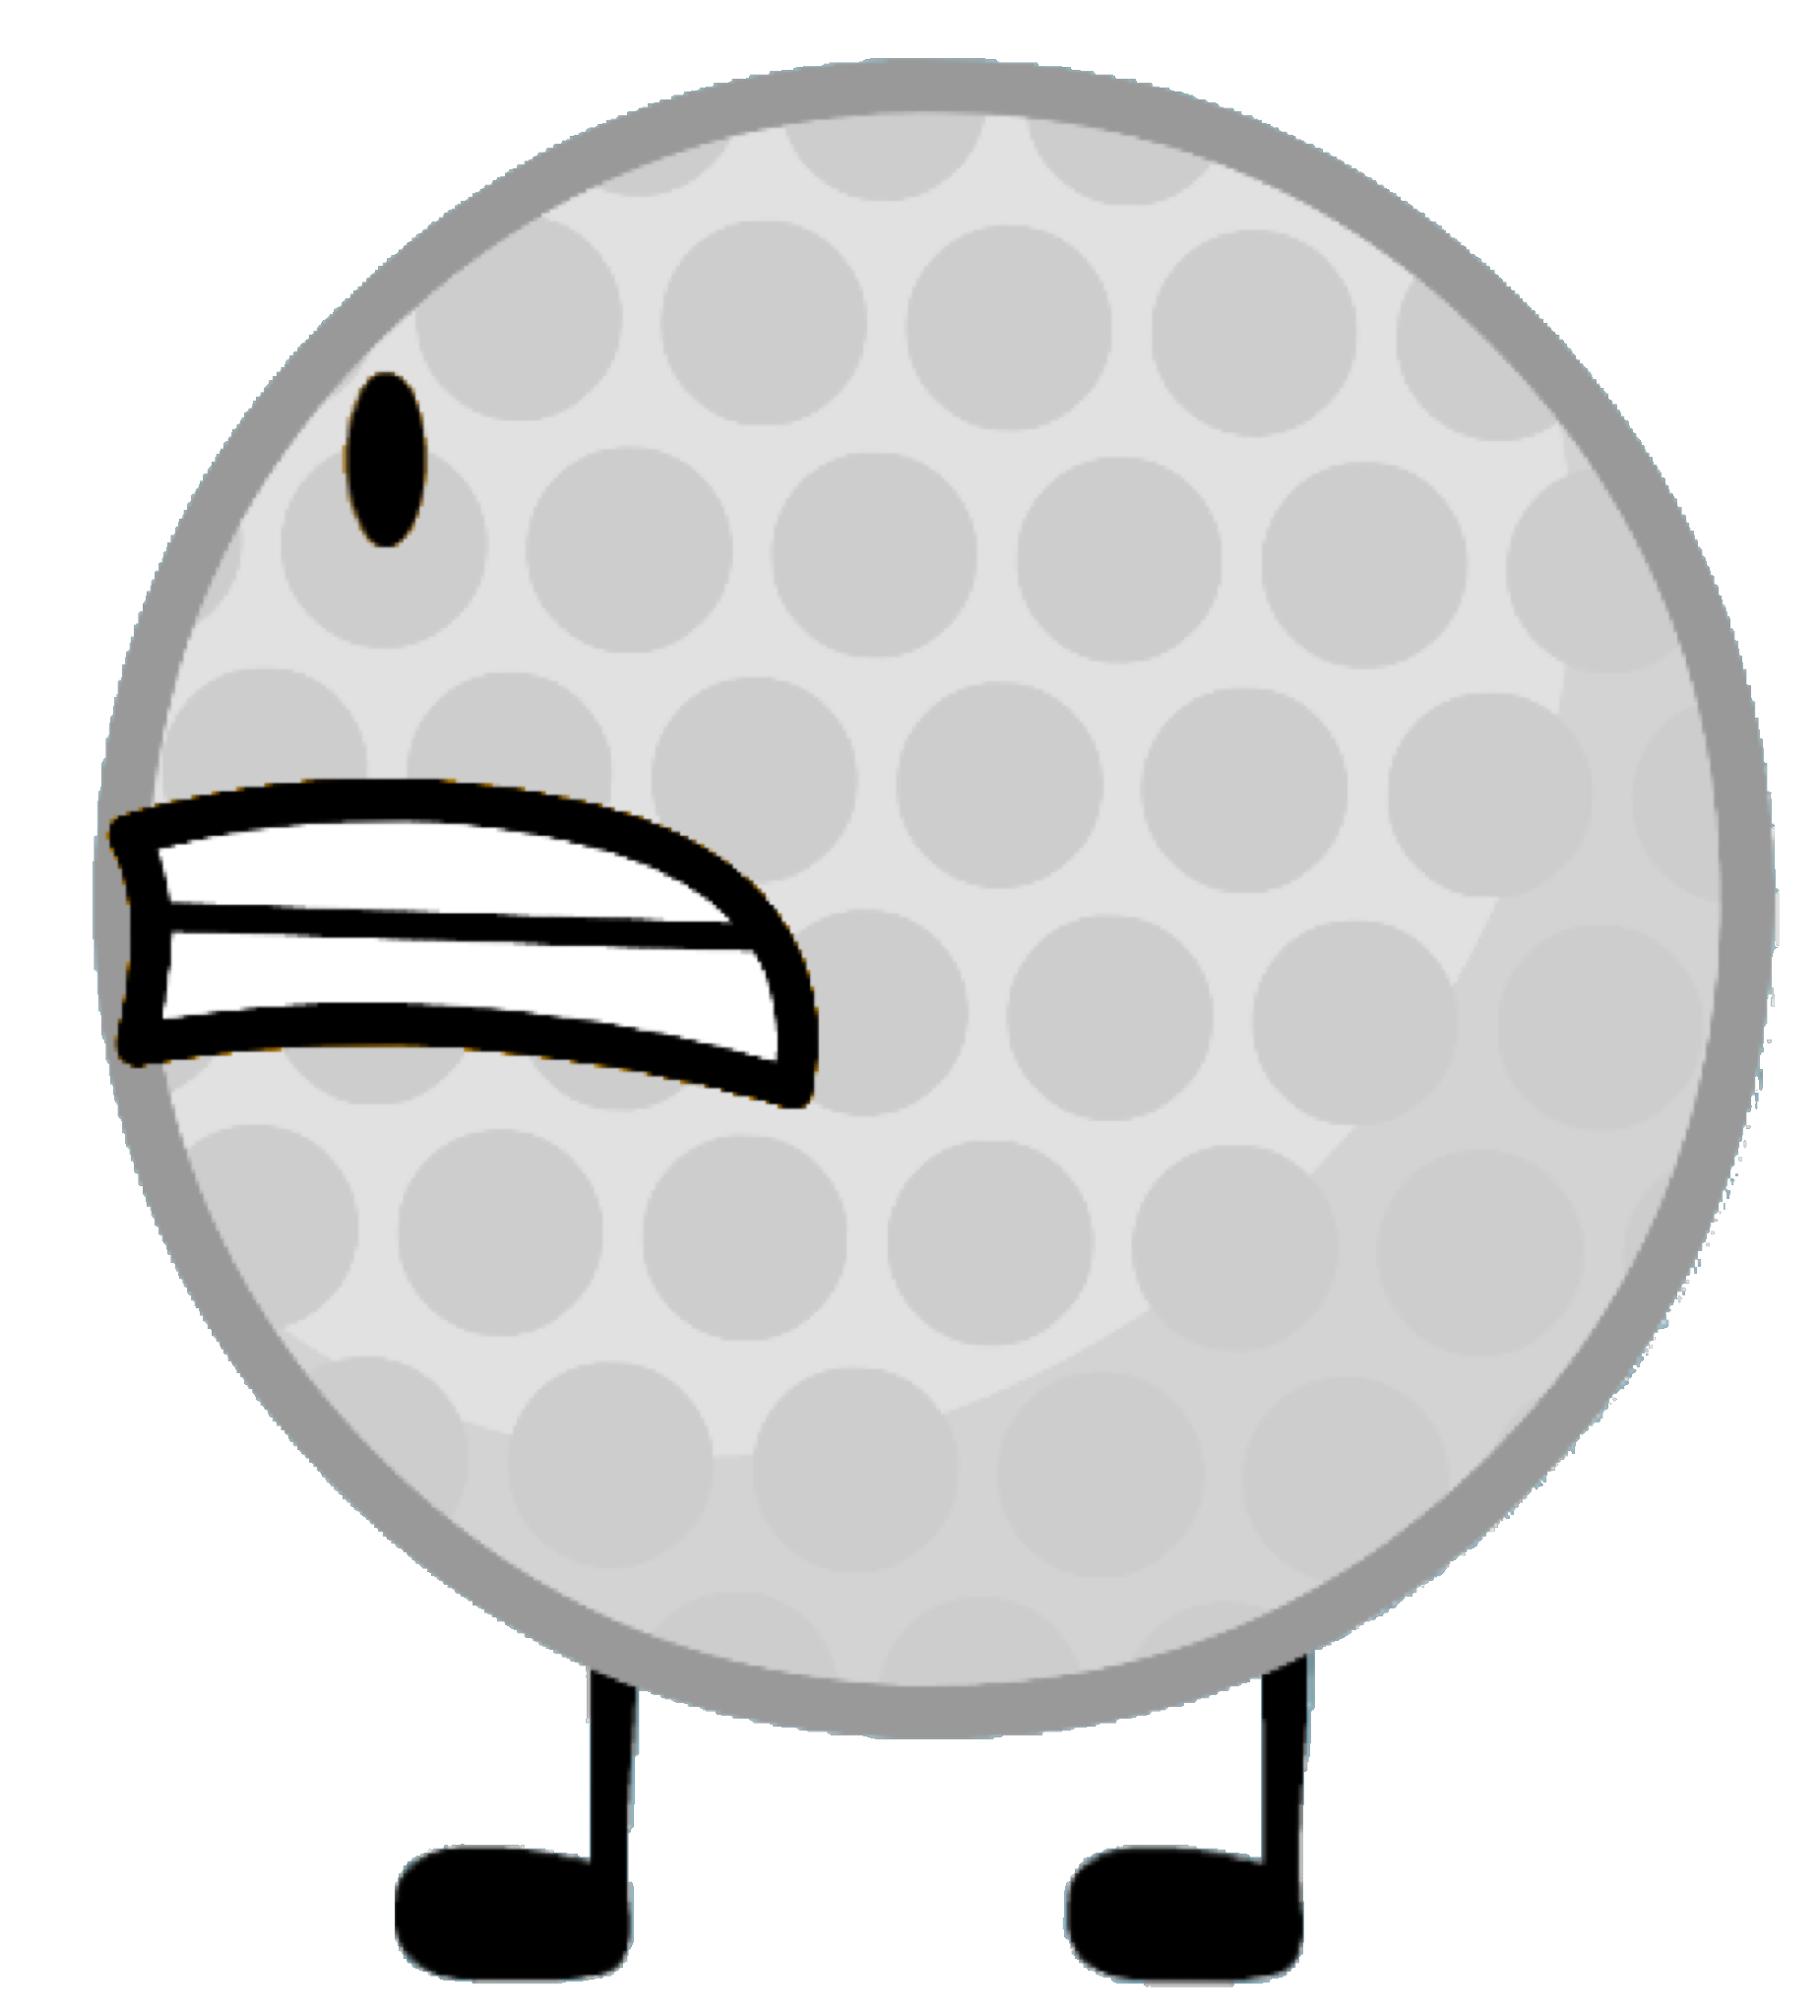 Golf ball png image. Battle for dream island